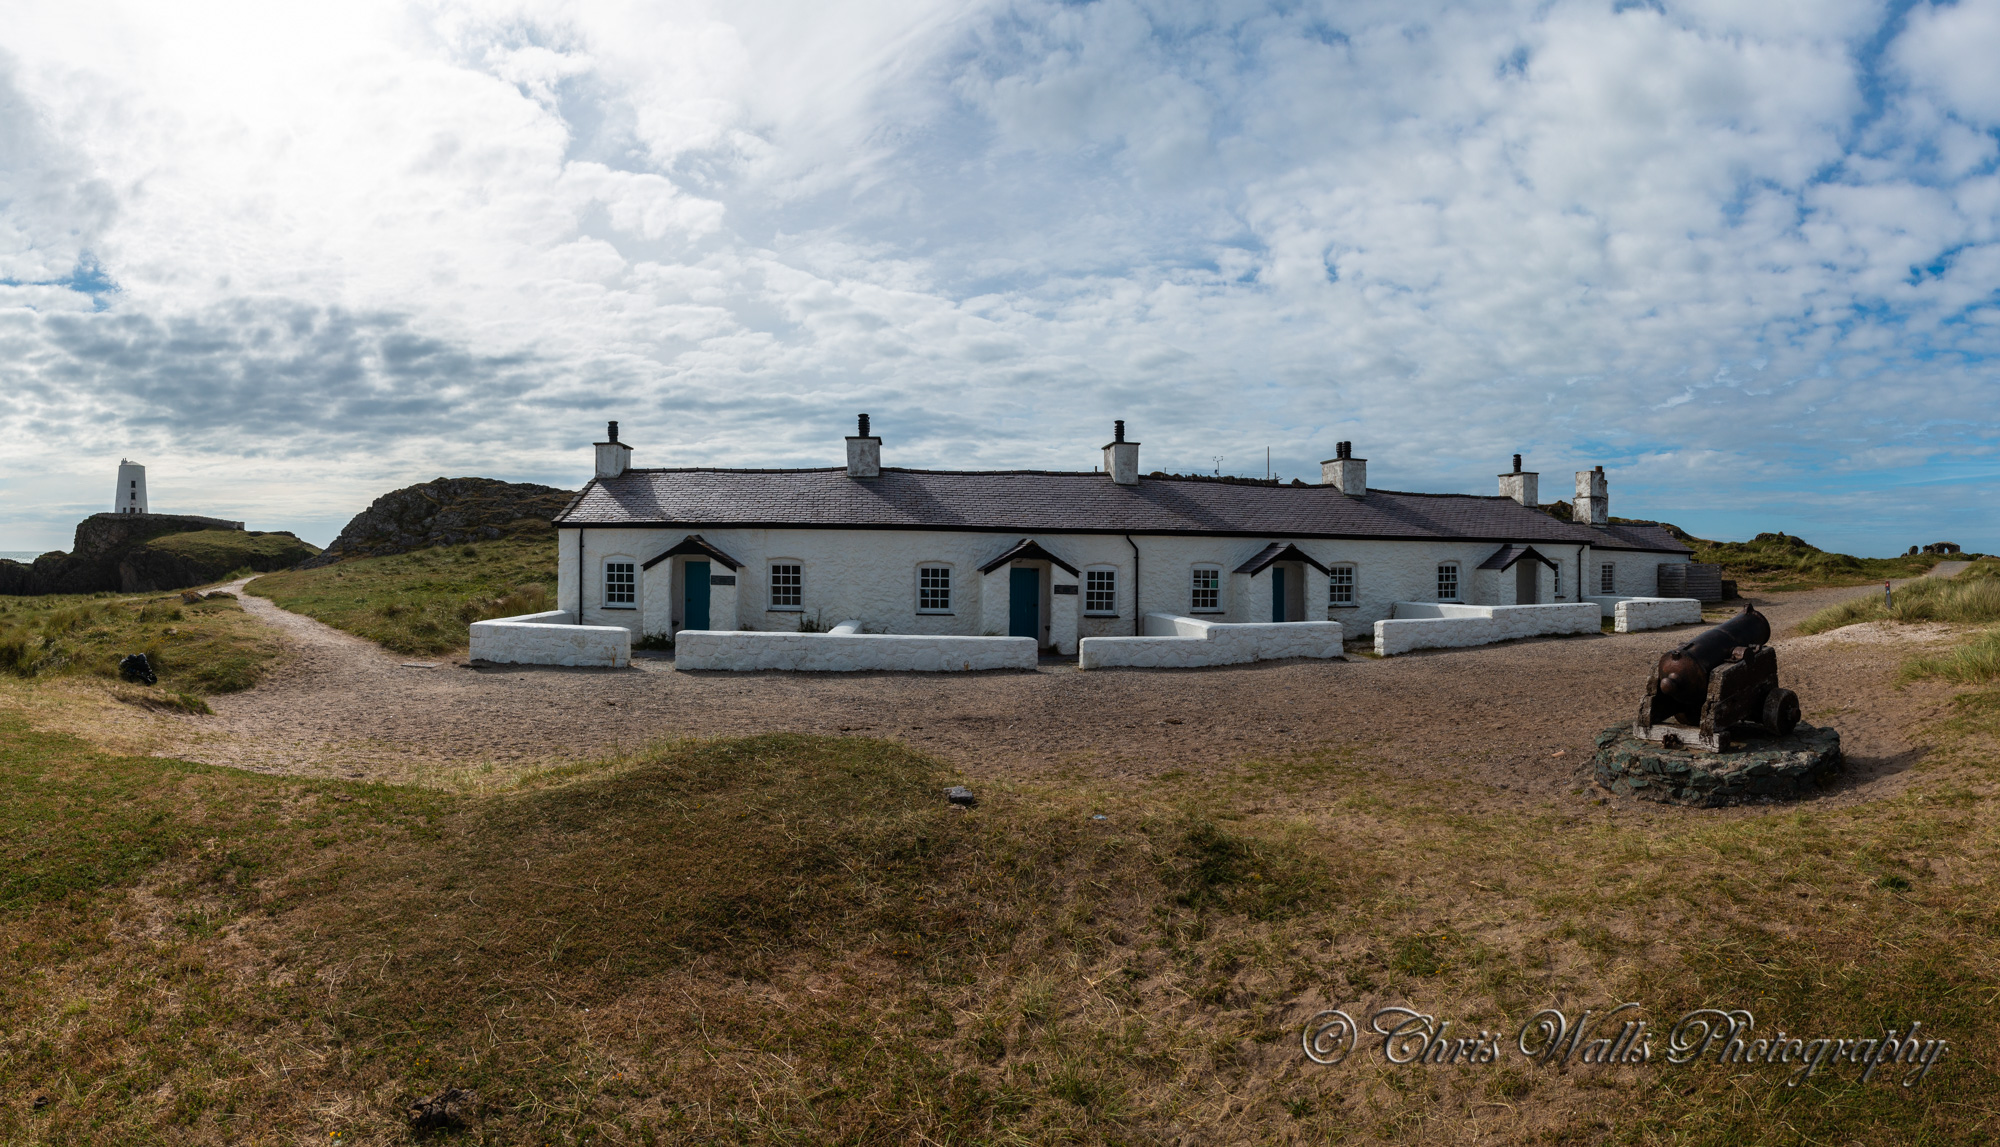 Pilots Cottages Llanddwyn Island Panorama